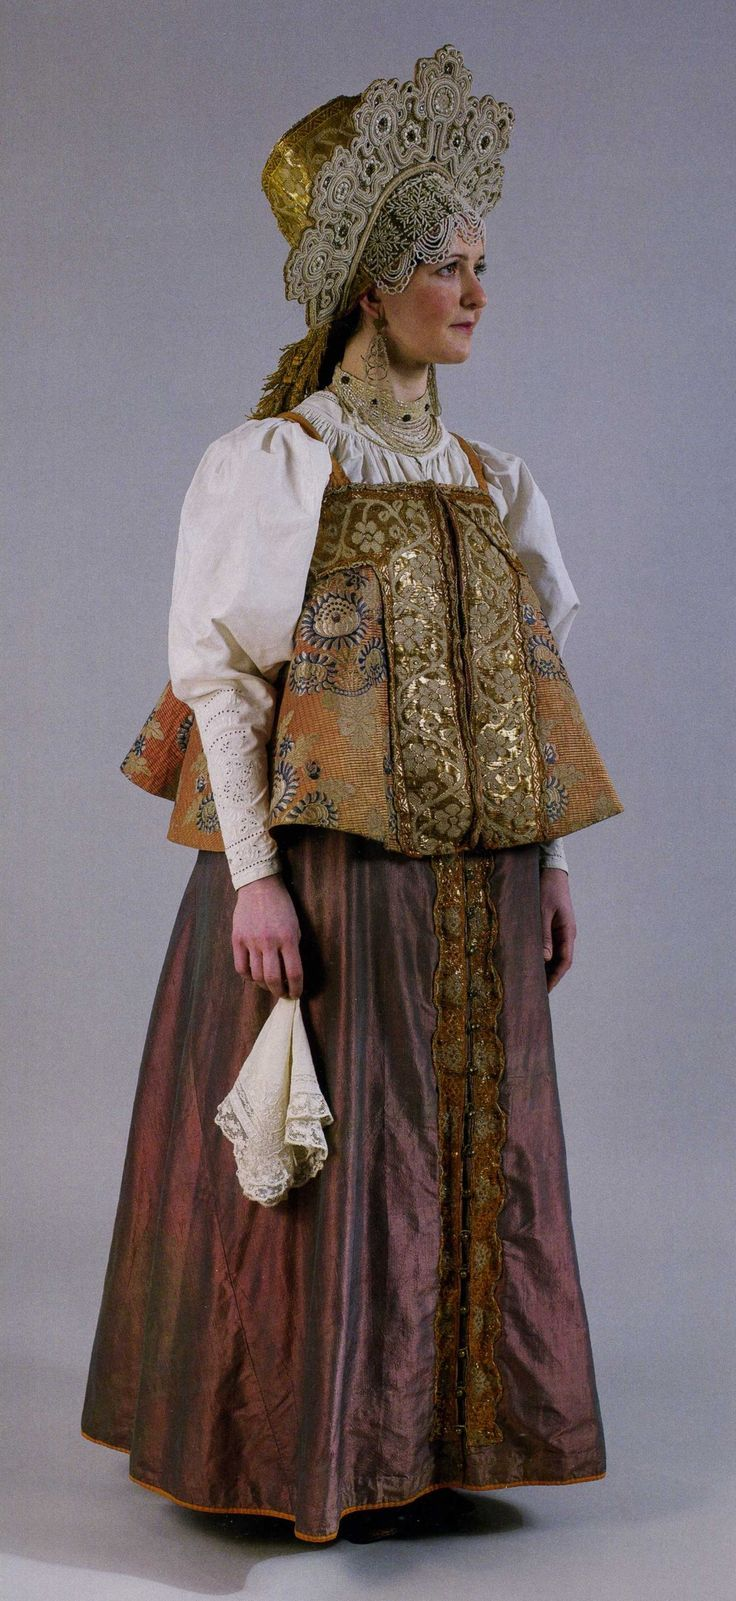 wedding costume. XIX century. Archangelsk region. Headdress for maidens- povyazka (here-high headdress with forehead ornament). wedding headdress- venetc (looks like kokoshnik). bride`s head shawl- shirinka. shirt, dushegreya (sleeveless), sarafan (dress). there are two types of headdresses because it is a symbol of her past live as maiden and future-as adult woman, that`s why she wears maiden and woman headdresses